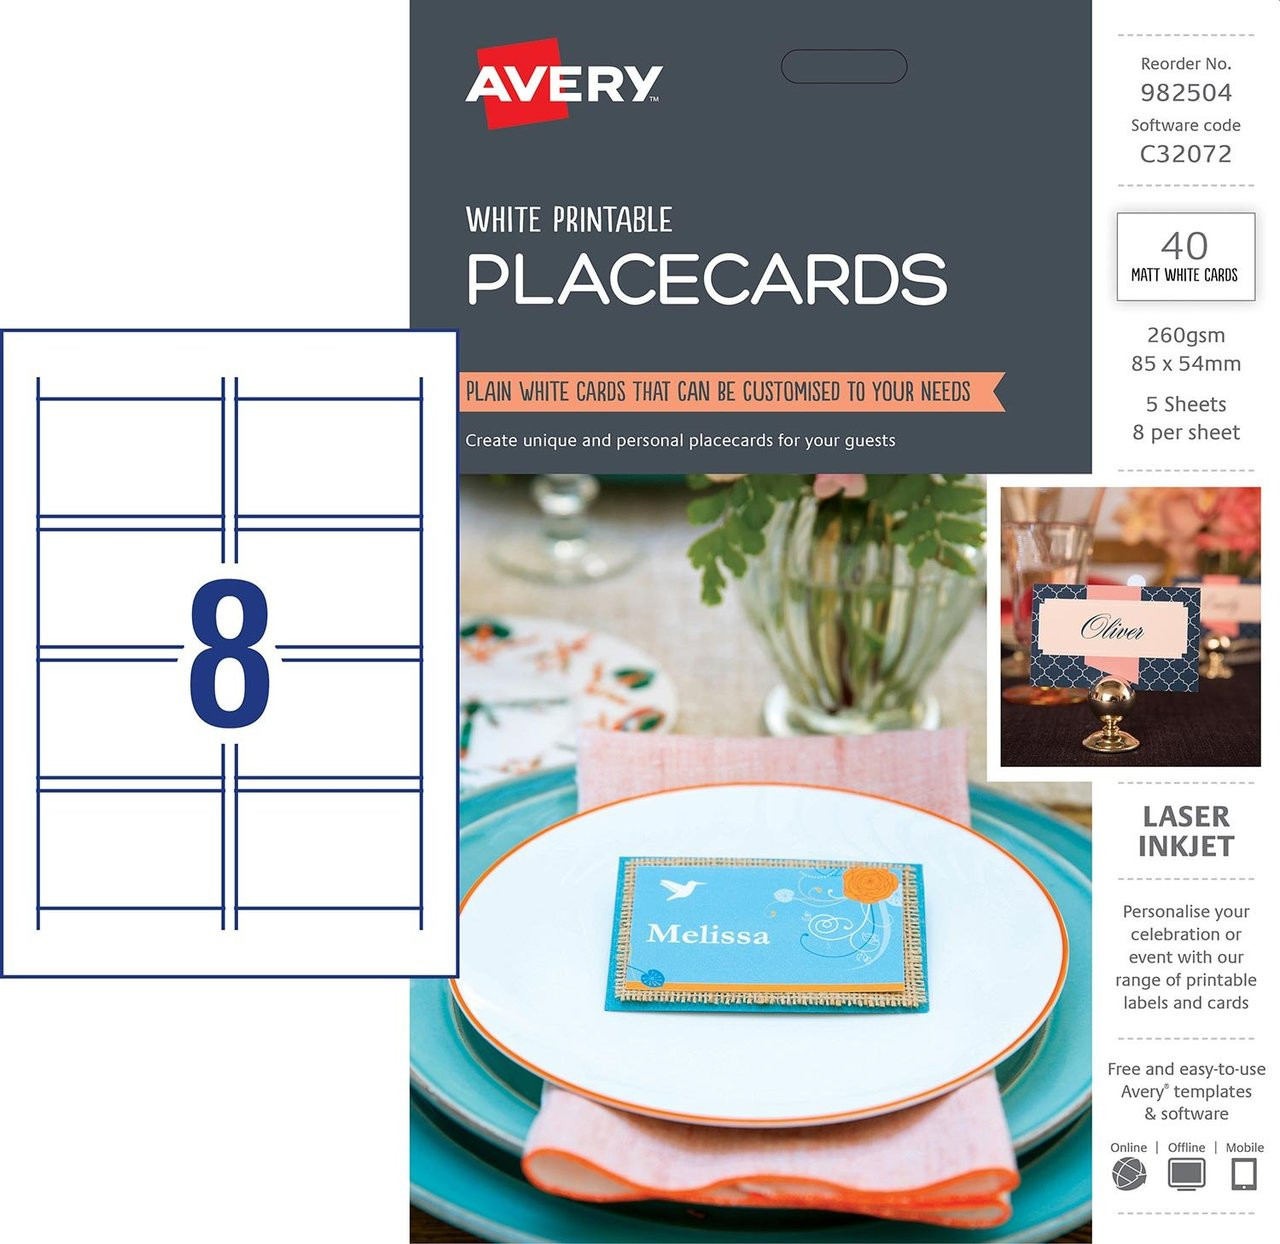 picture about Avery Printable Place Cards known as AVERY 982504 PLACECARDS, C32072, 40/PACK, 85 X 54MM 8UP